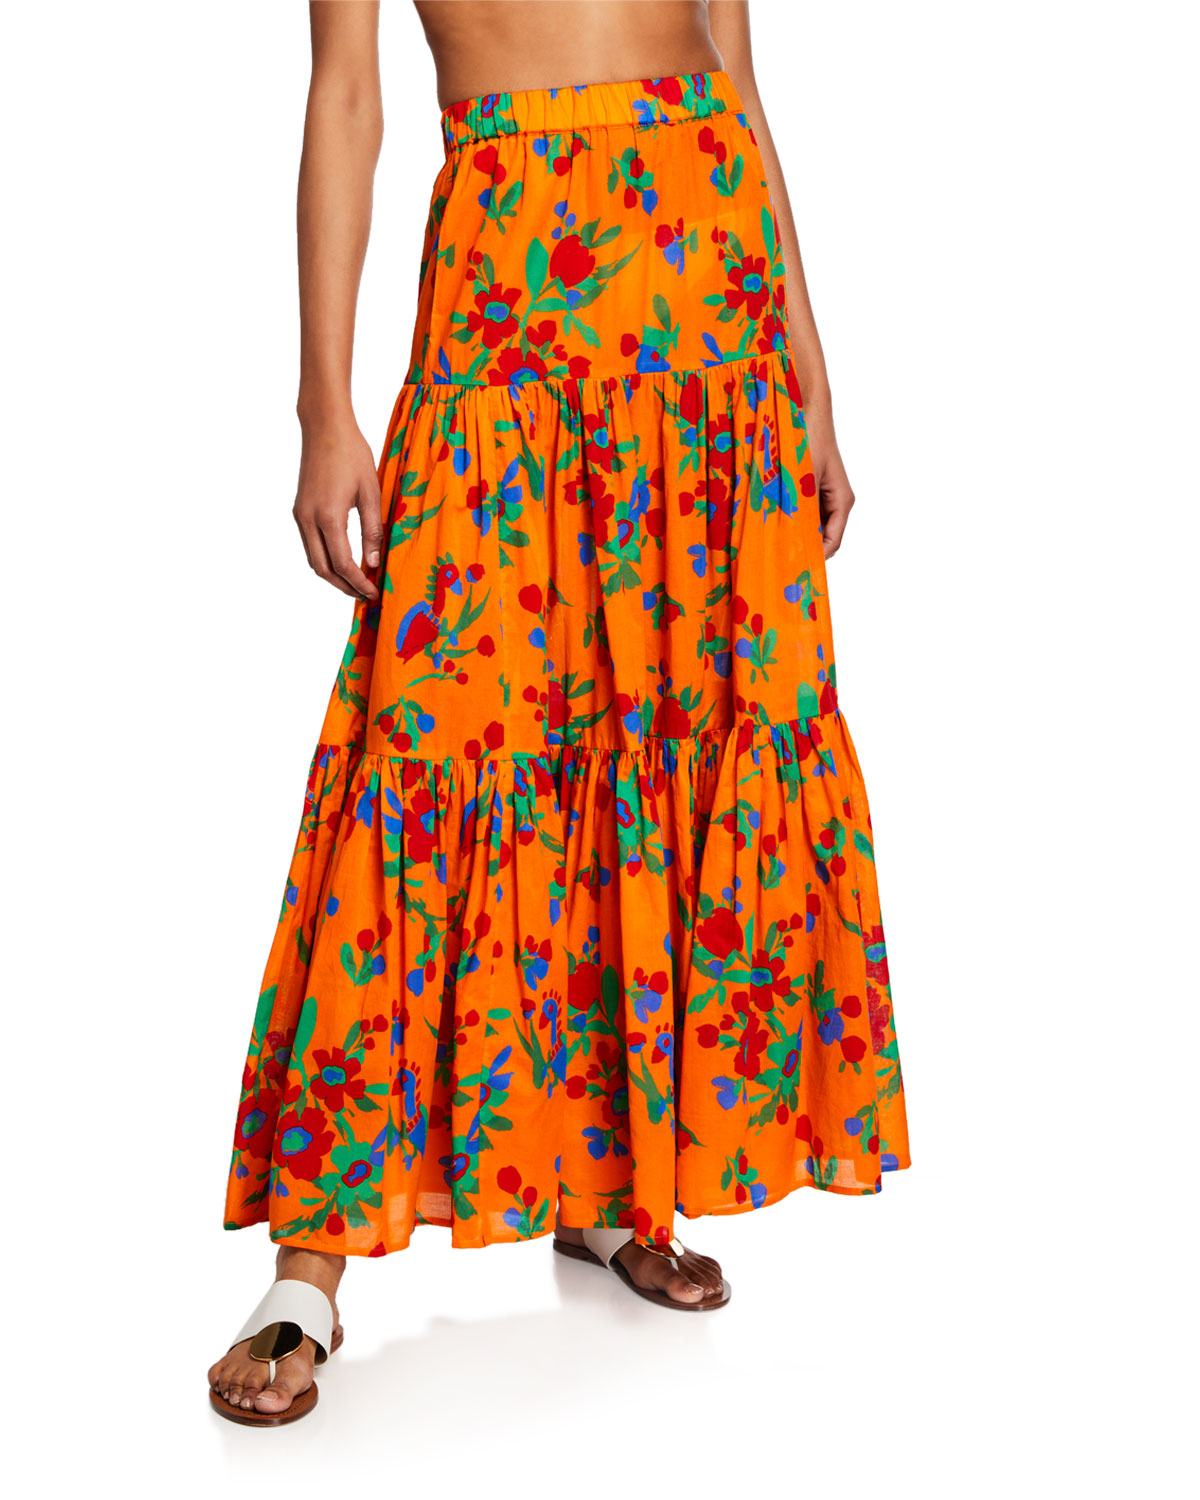 d9a2fdde4cc8 Tory Burch Floral-Print Tiered Coverup Maxi Dress